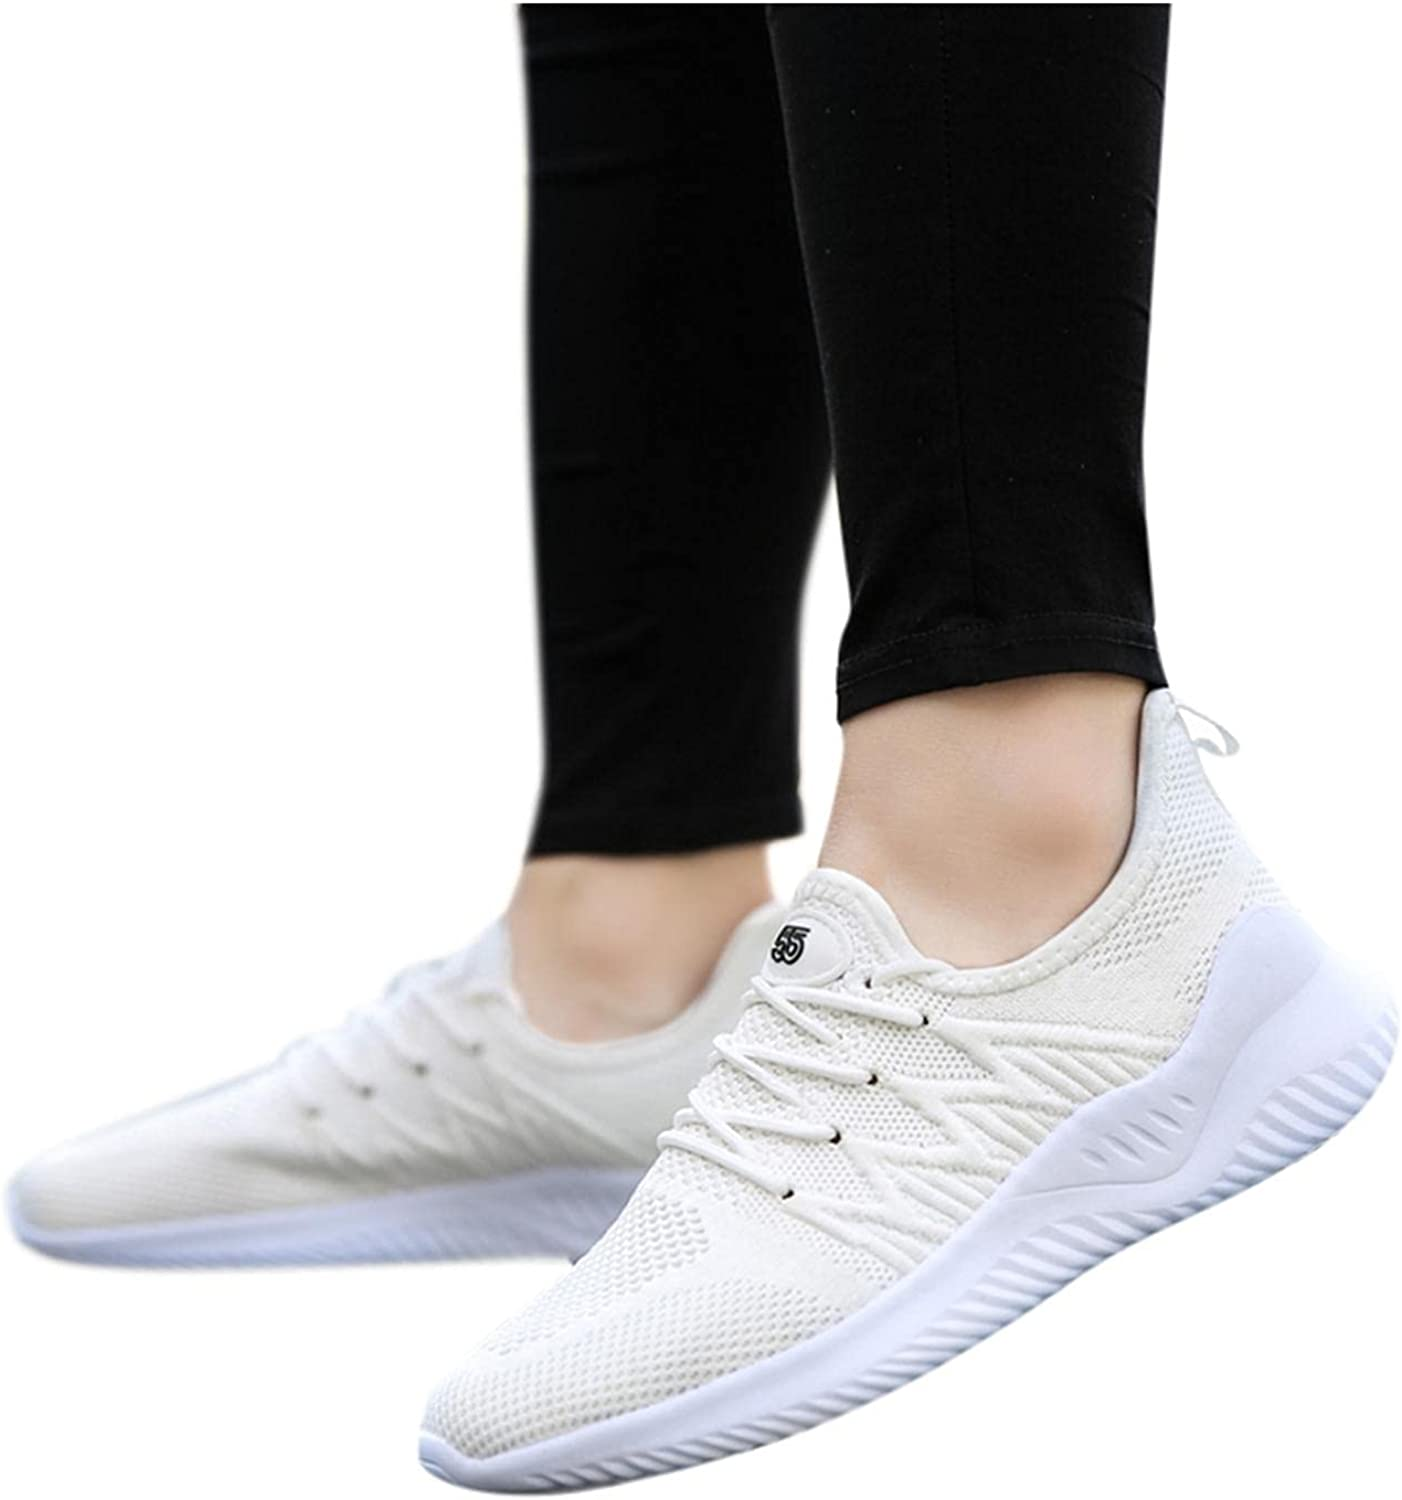 Hbeylia Women's Walking Running Shoes Fashion Sneakers Lightweight Breathable Casual Mesh Non Slip Athletic Hiking Climbing Trekking Tennis Workout Gym Sport Shoes For Women Men